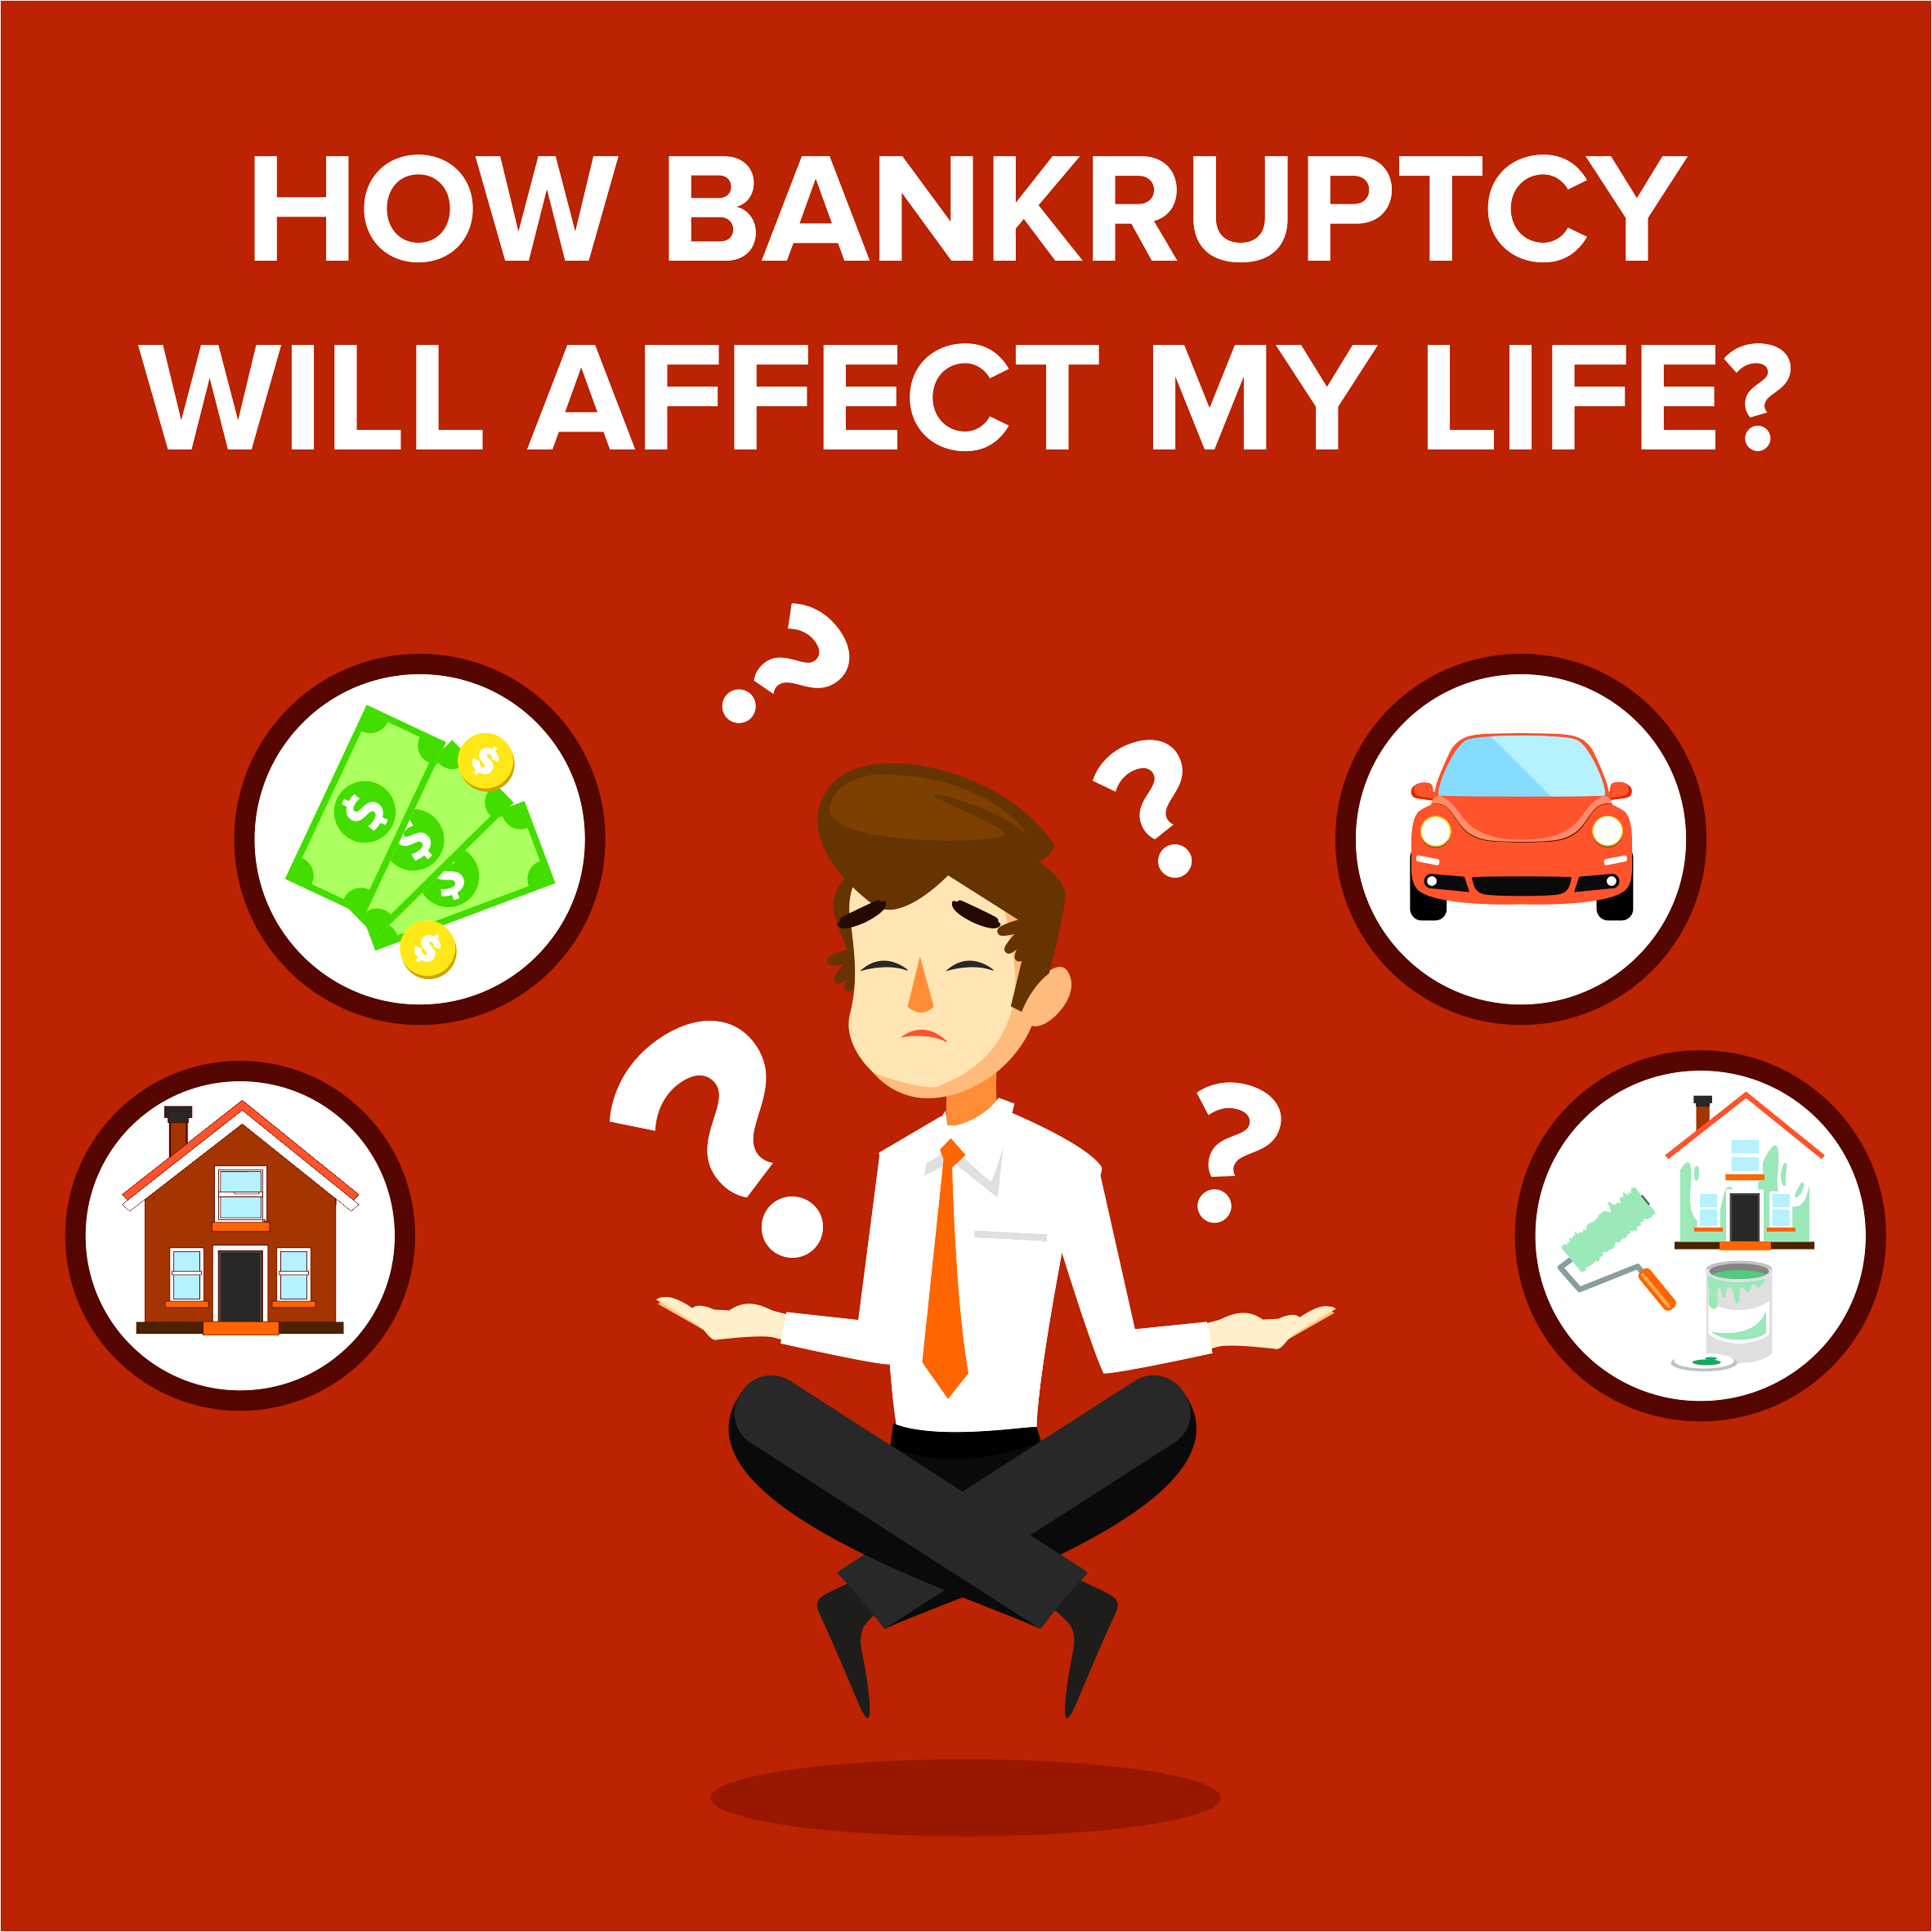 How Bankruptcy Will Affect My Life?